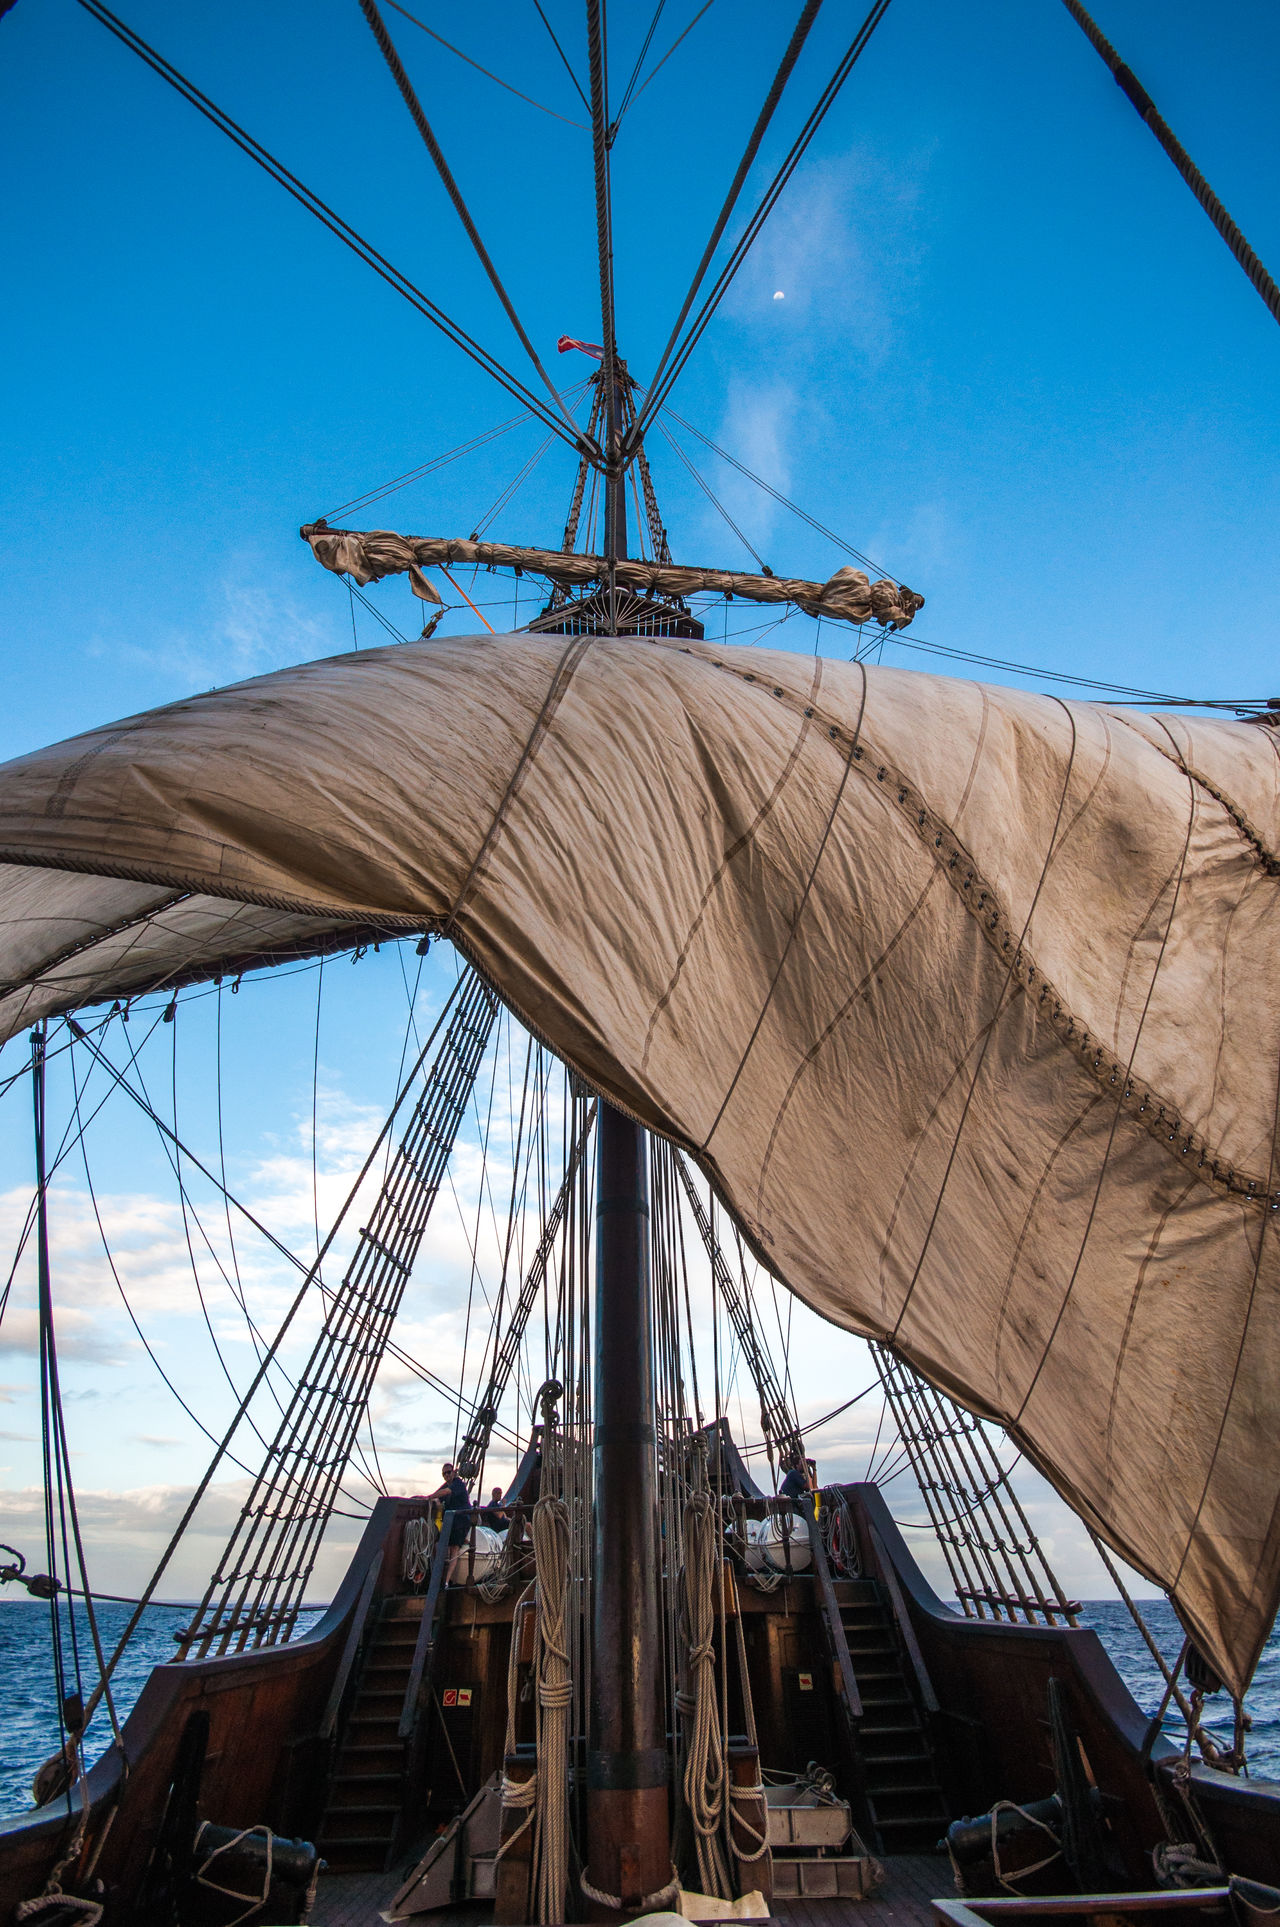 Day Galleon Mast Nautical Equipment Nautical Vessel No People Outdoors Pirate Pirates Pirateship  Rigging Sail Sailboat Sailing Sailing Ship Sailing Ship Ship Sky Tall Ship Tall Ship Transportation Travel Wood Ships XVIII. Century